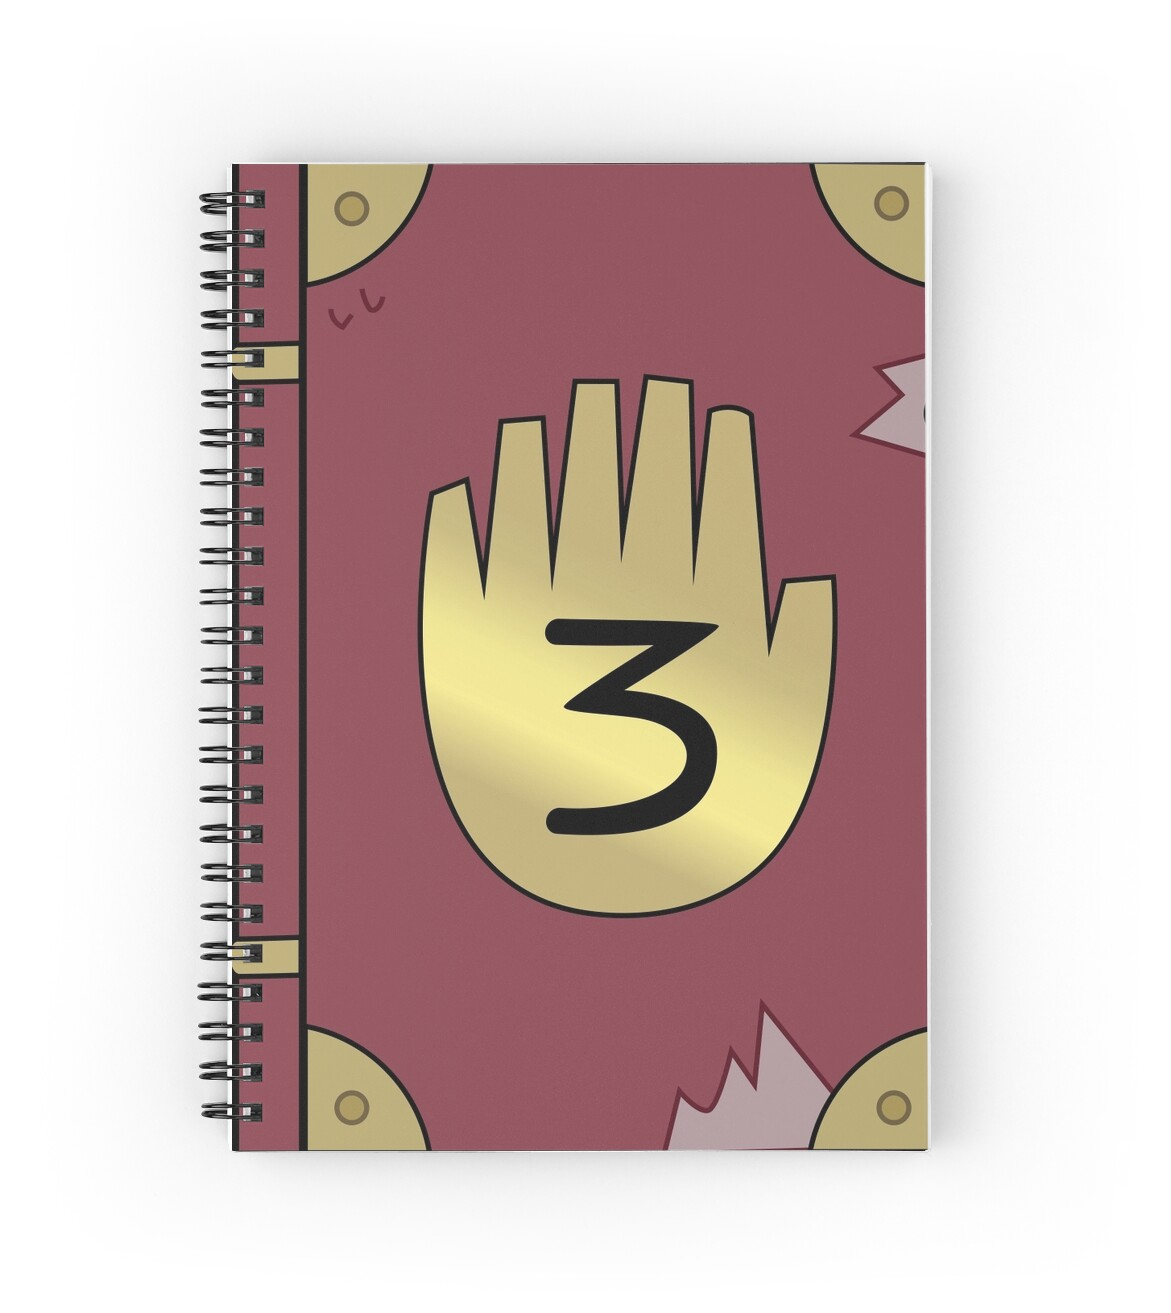 gravity falls journal 3 spiral notebooks by